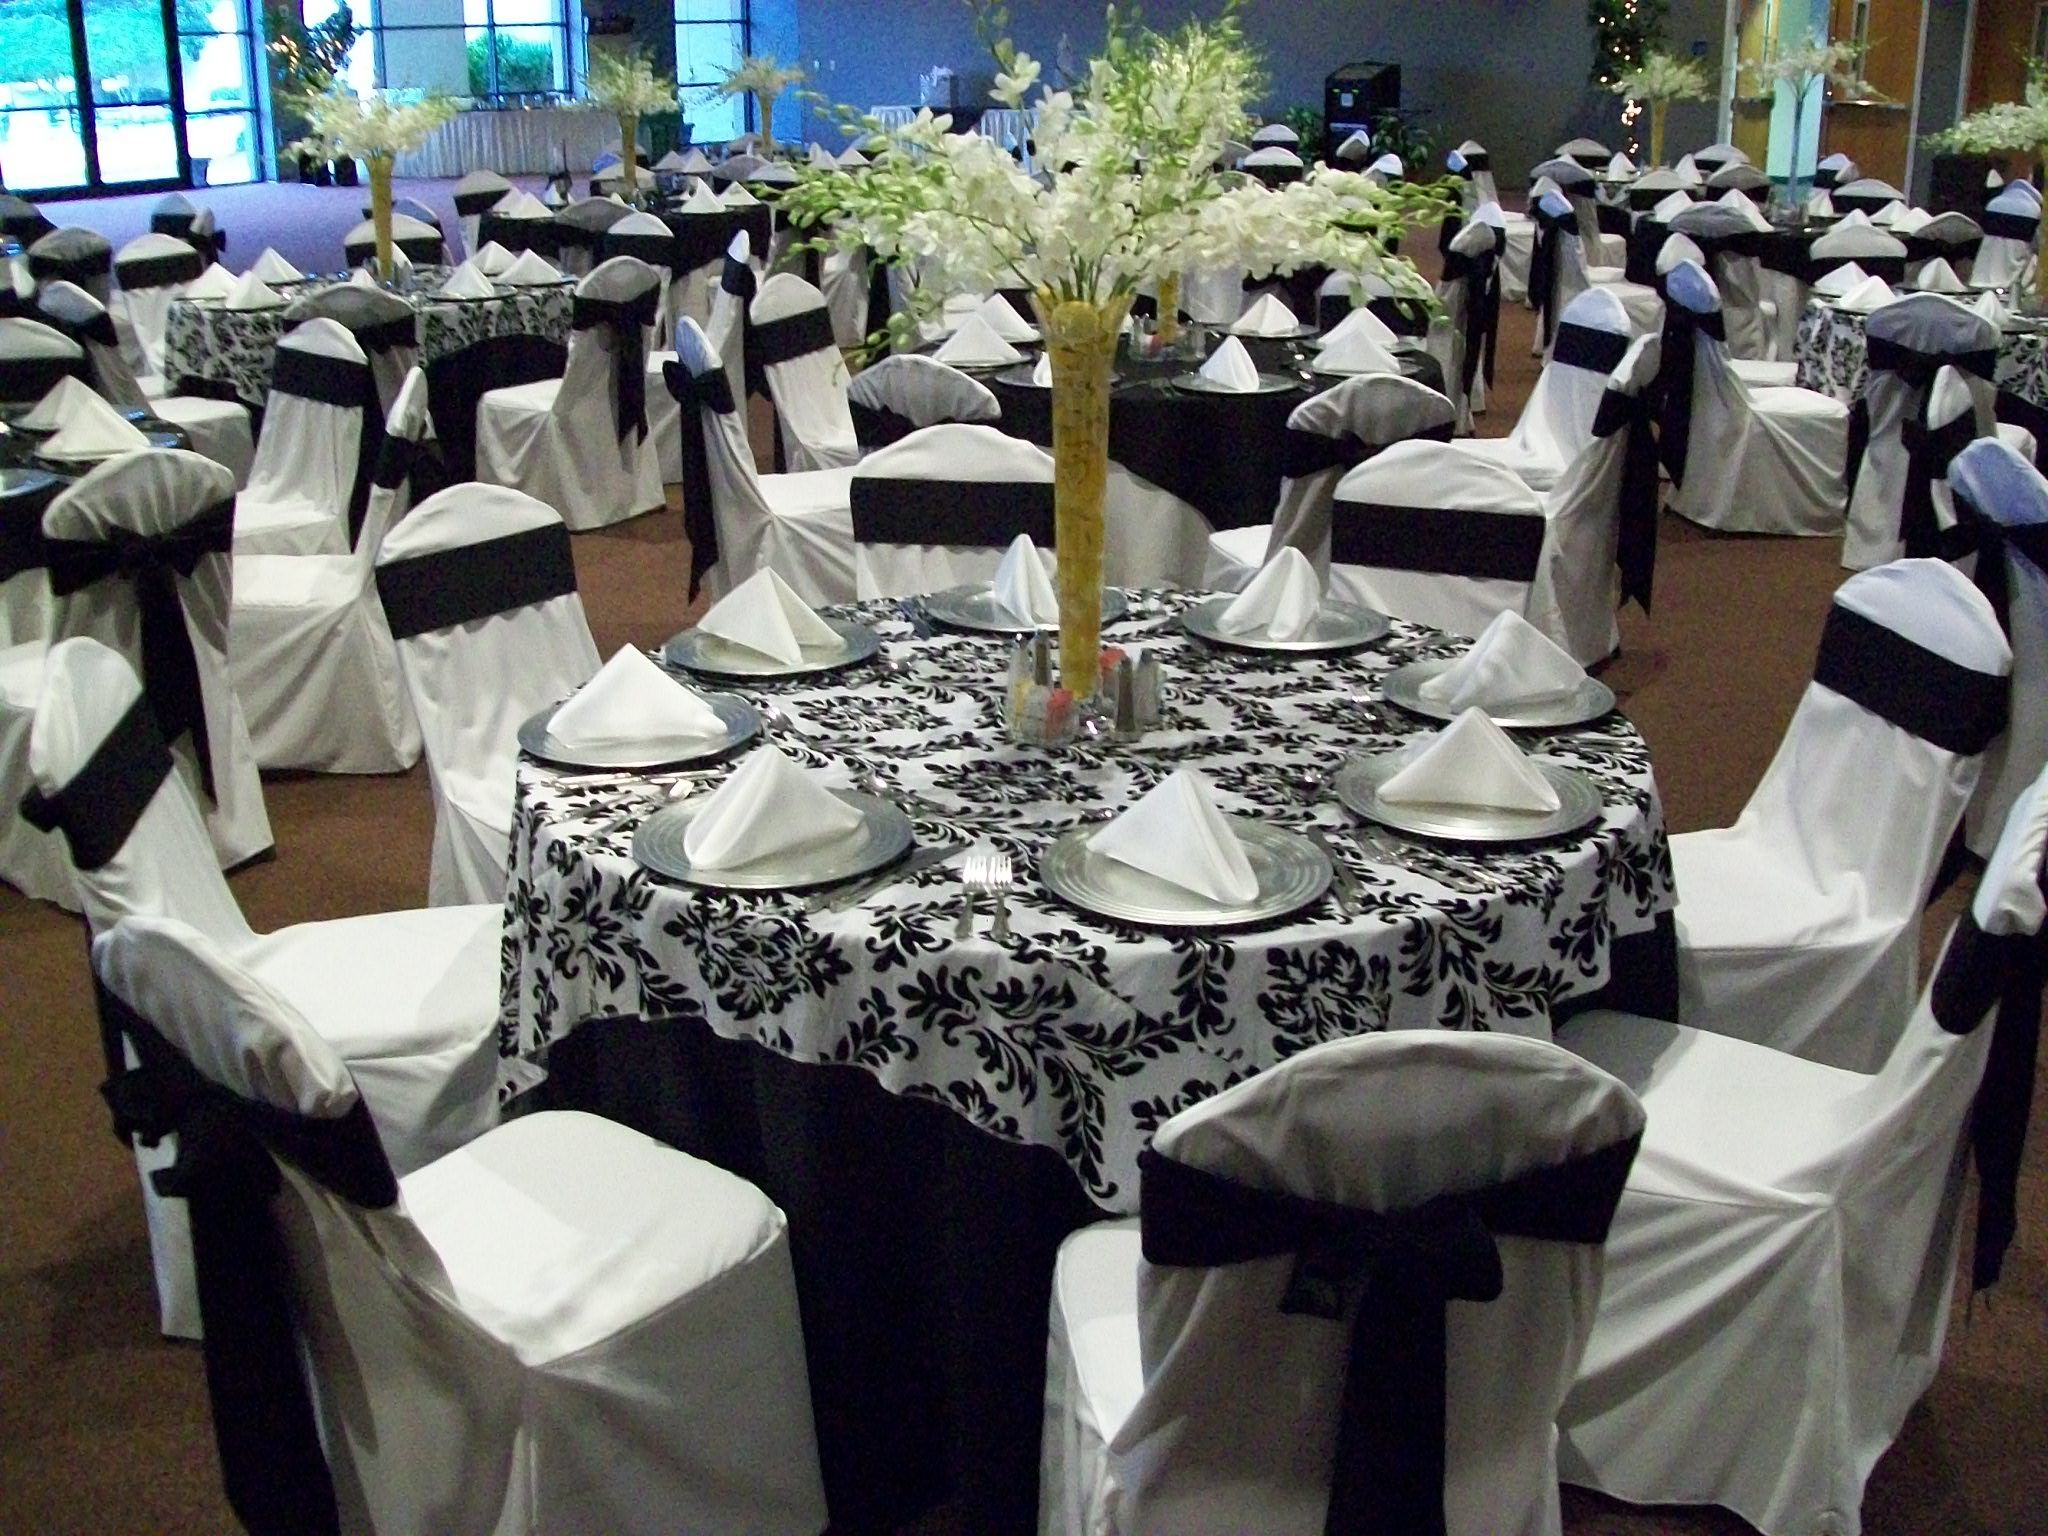 wedding linens Linen Rentals Black and White Flocking Overlay on Black Poly Linen White Chair Covers